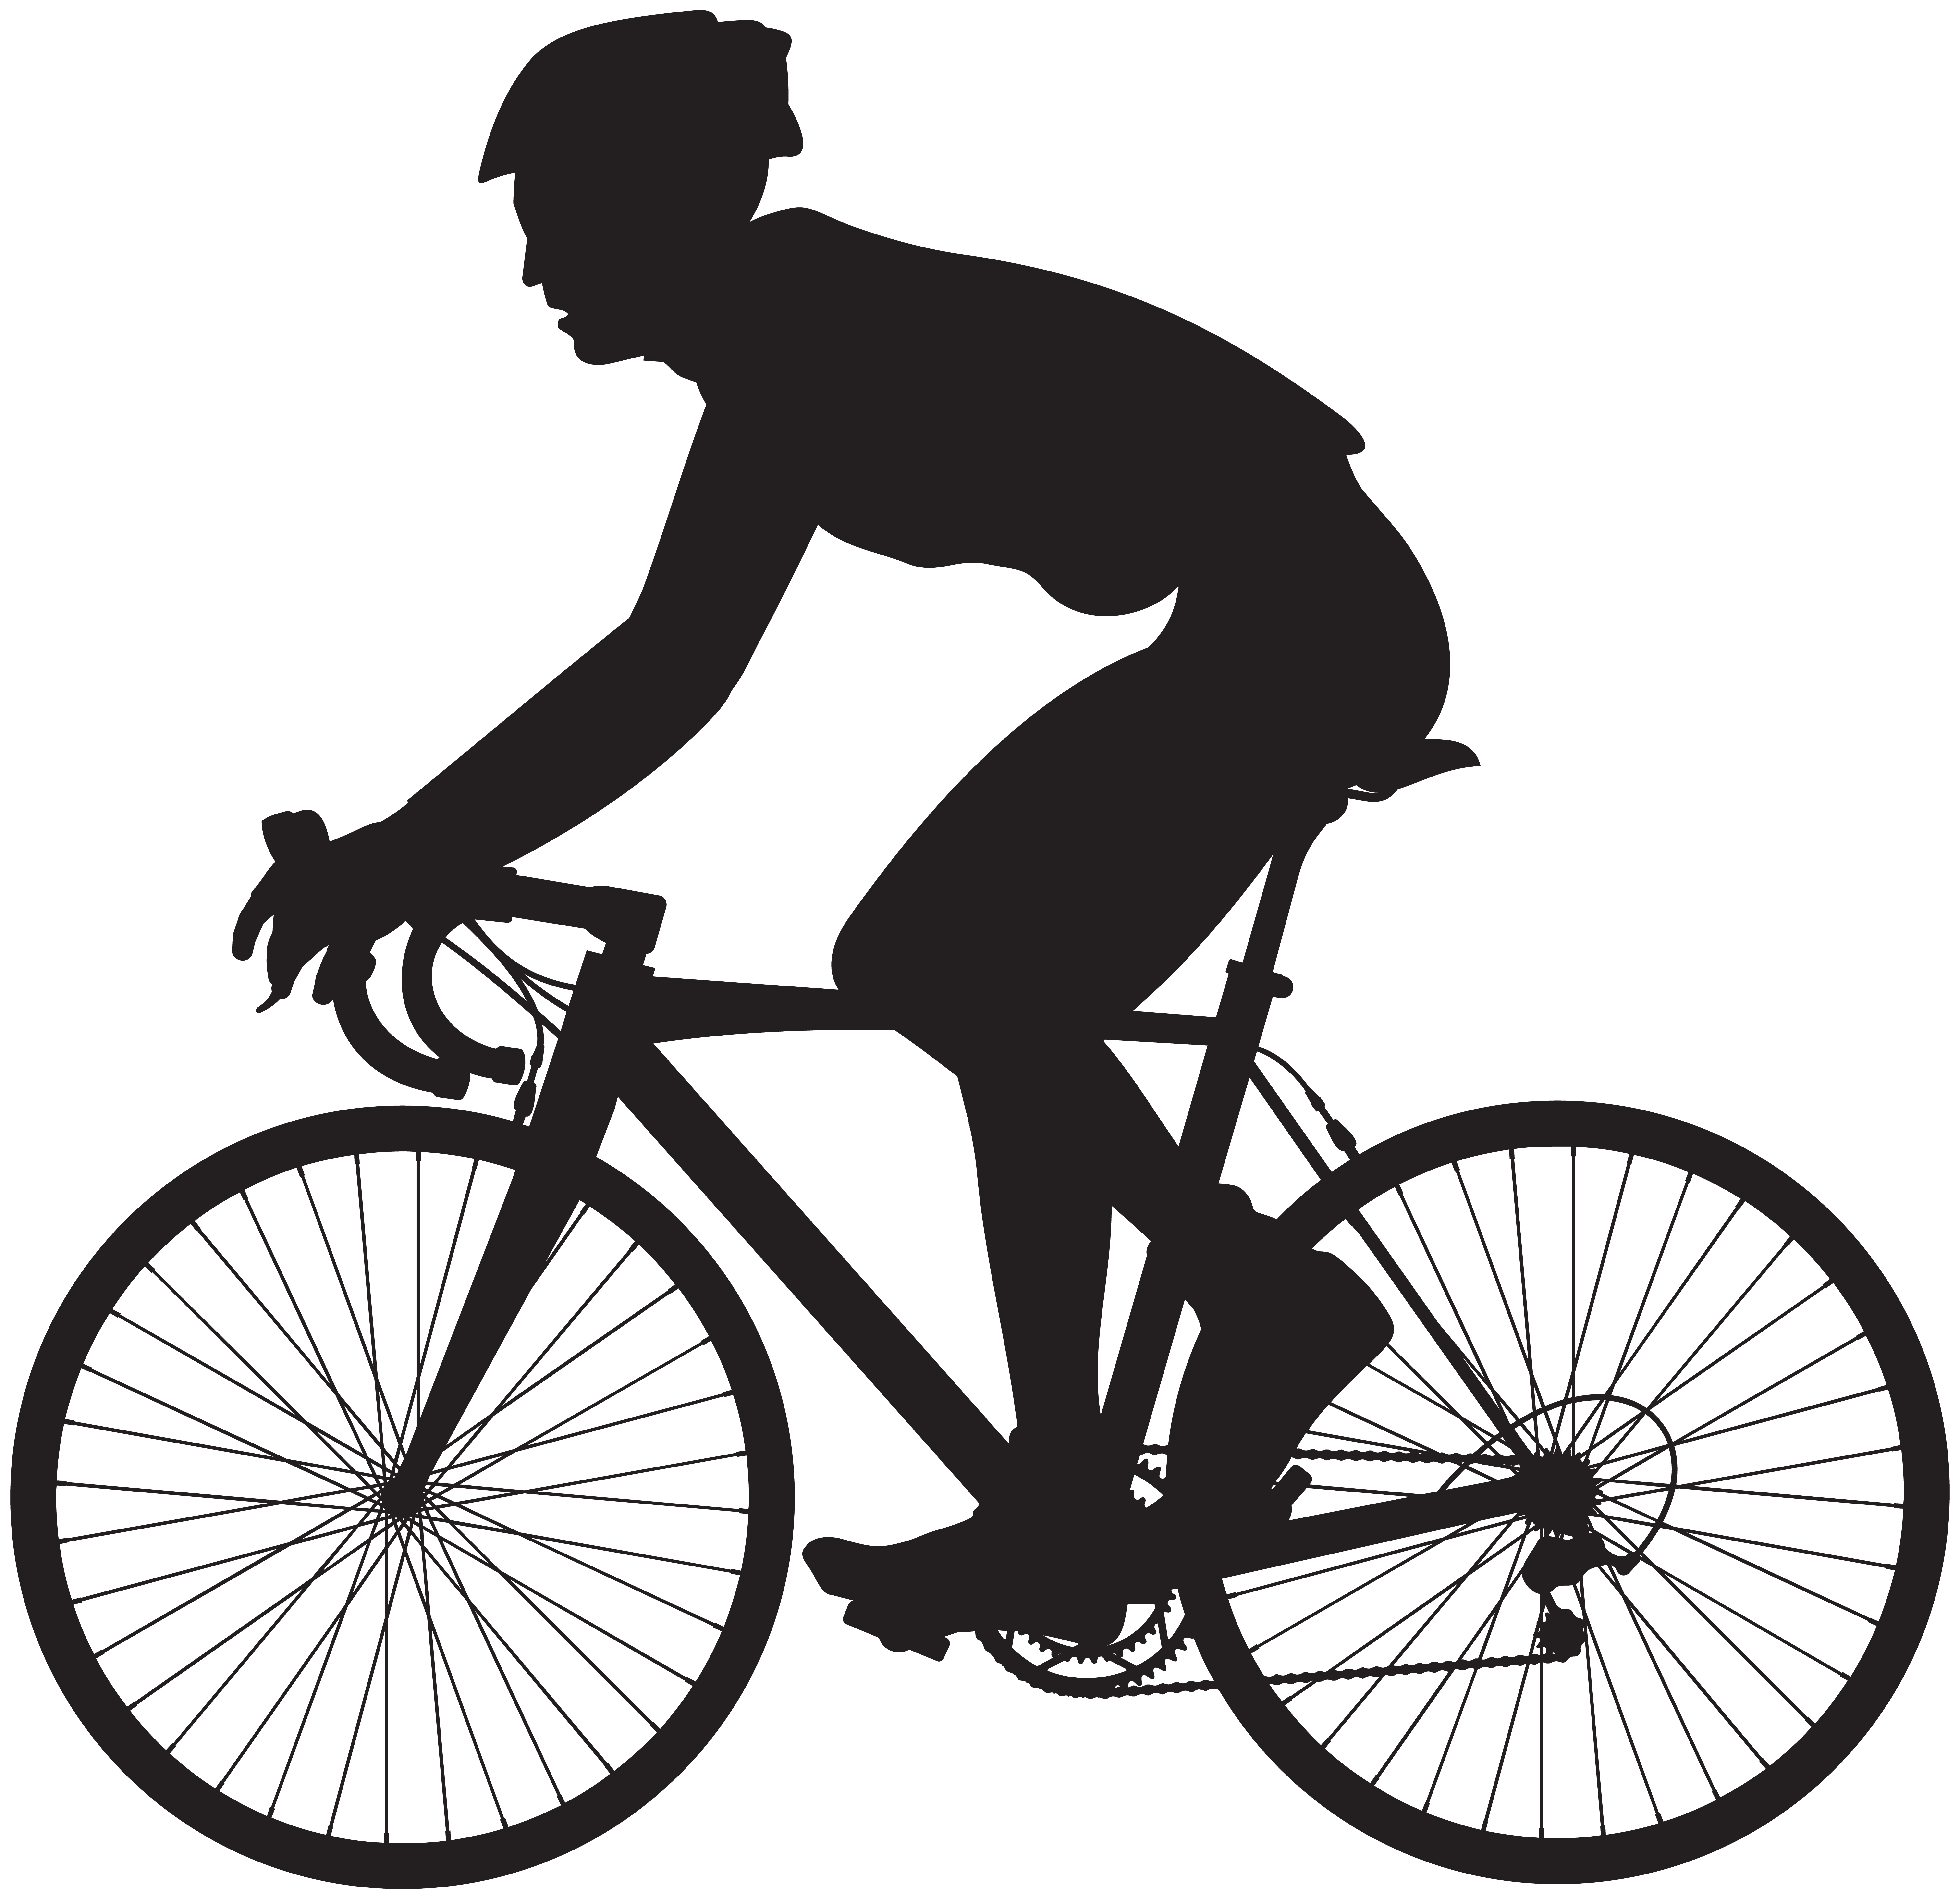 royalty free download Pedal free on dumielauxepices. Cycling clipart